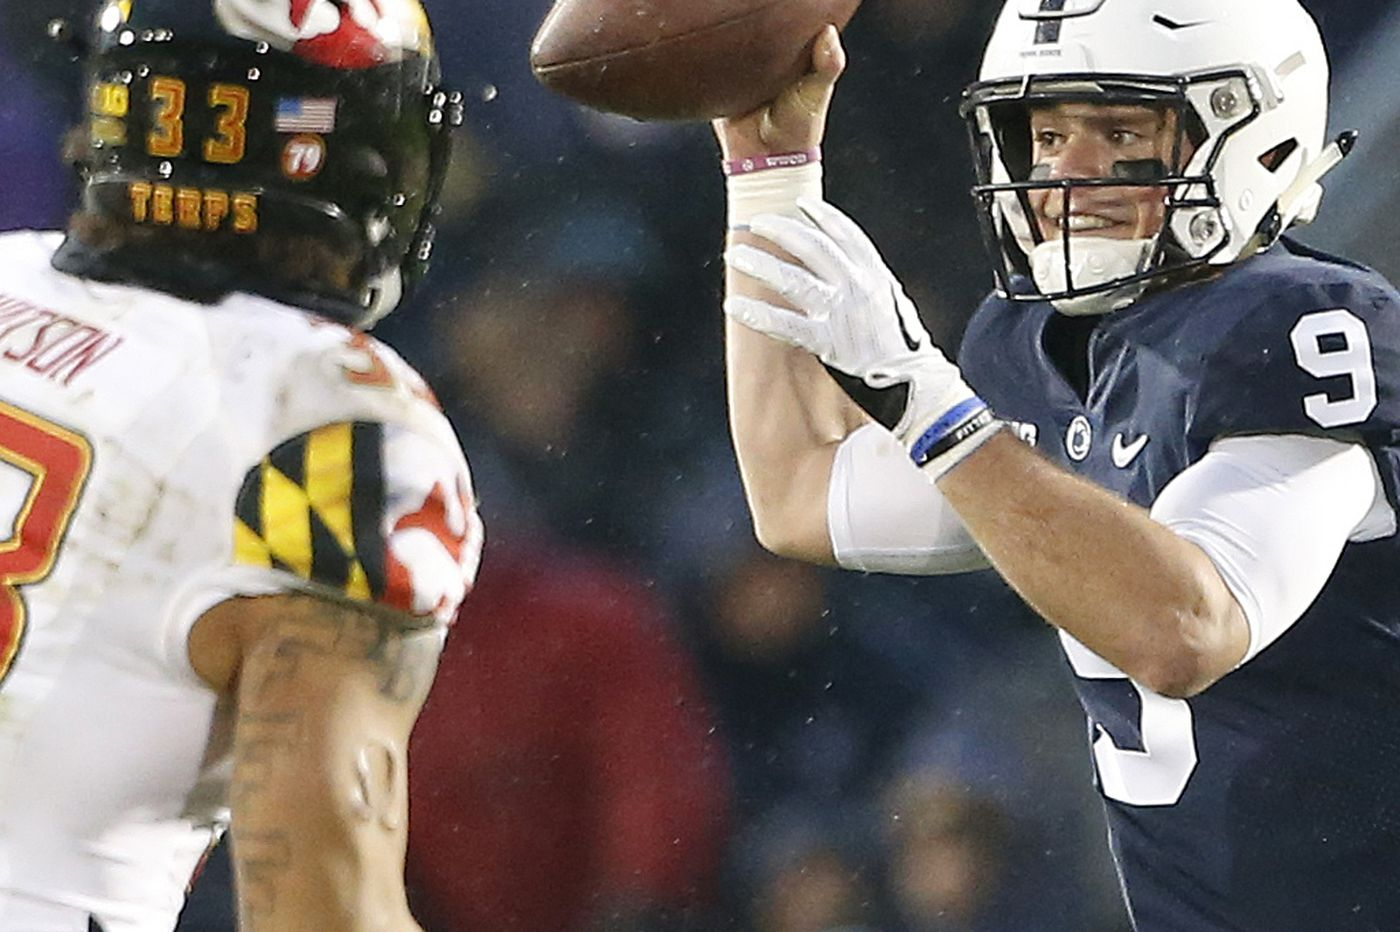 Penn State 'excited' to face Kentucky in Citrus Bowl